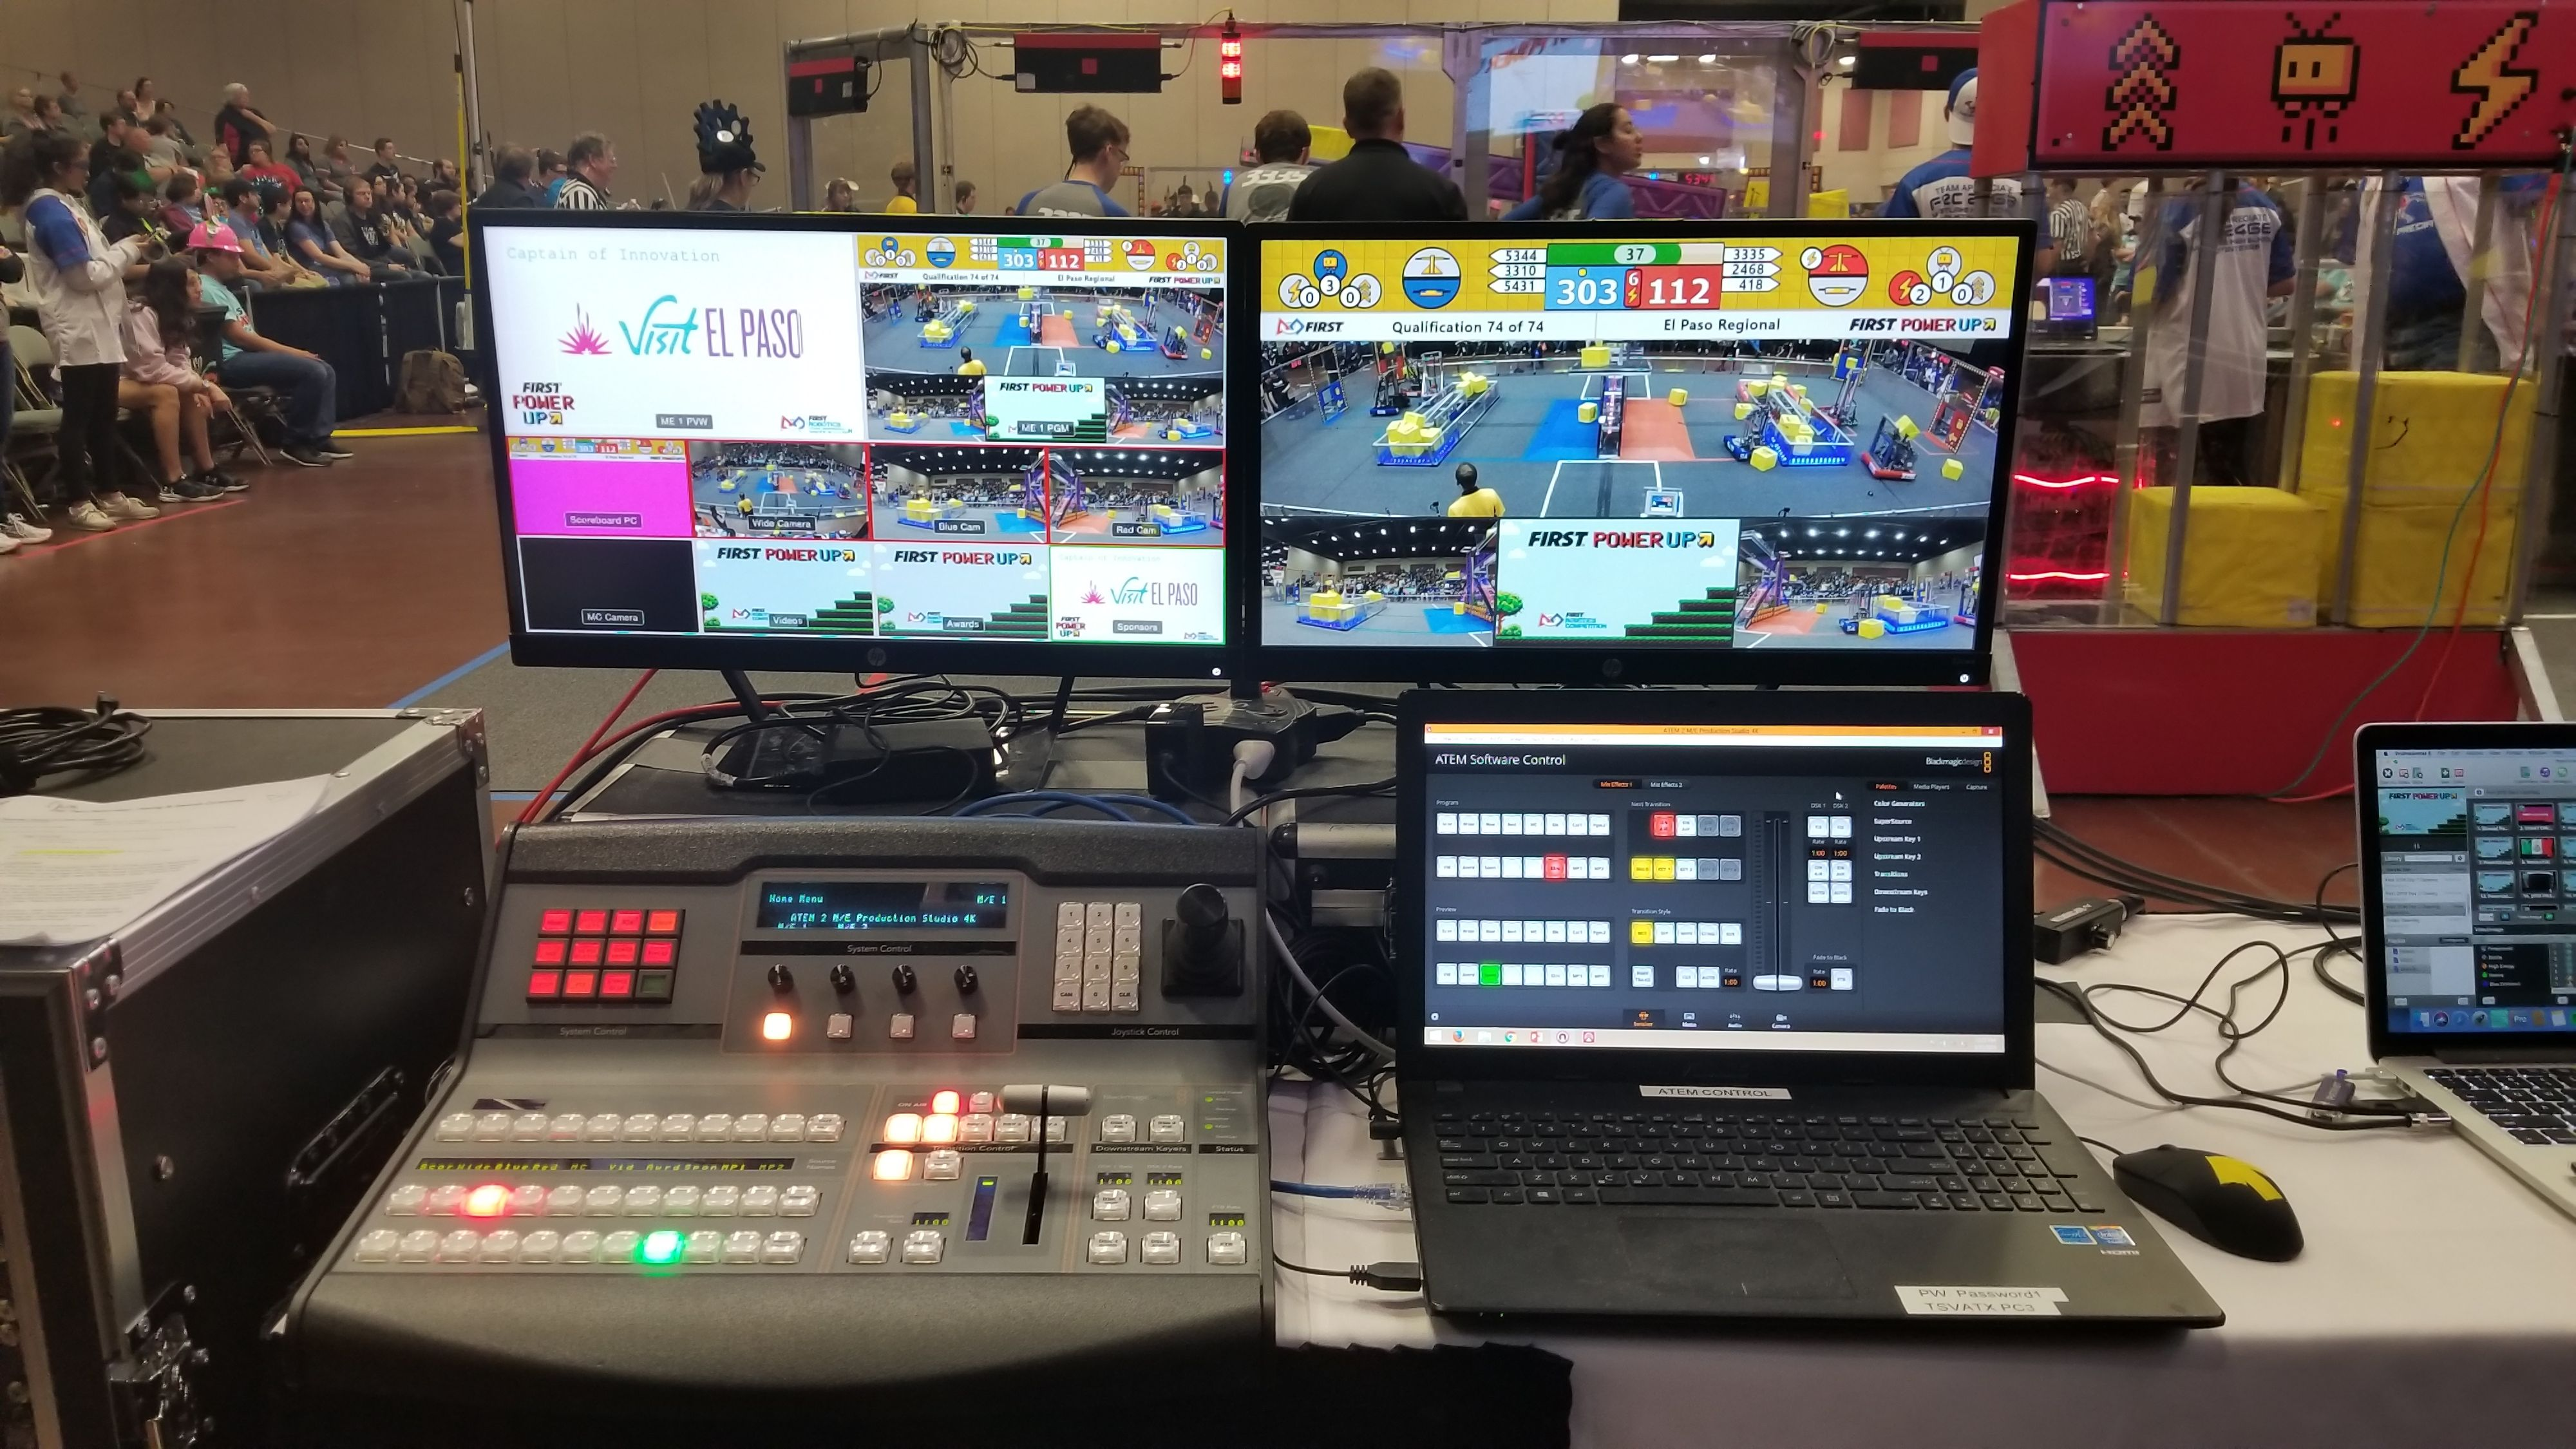 Video Production Equipment at a STL Event